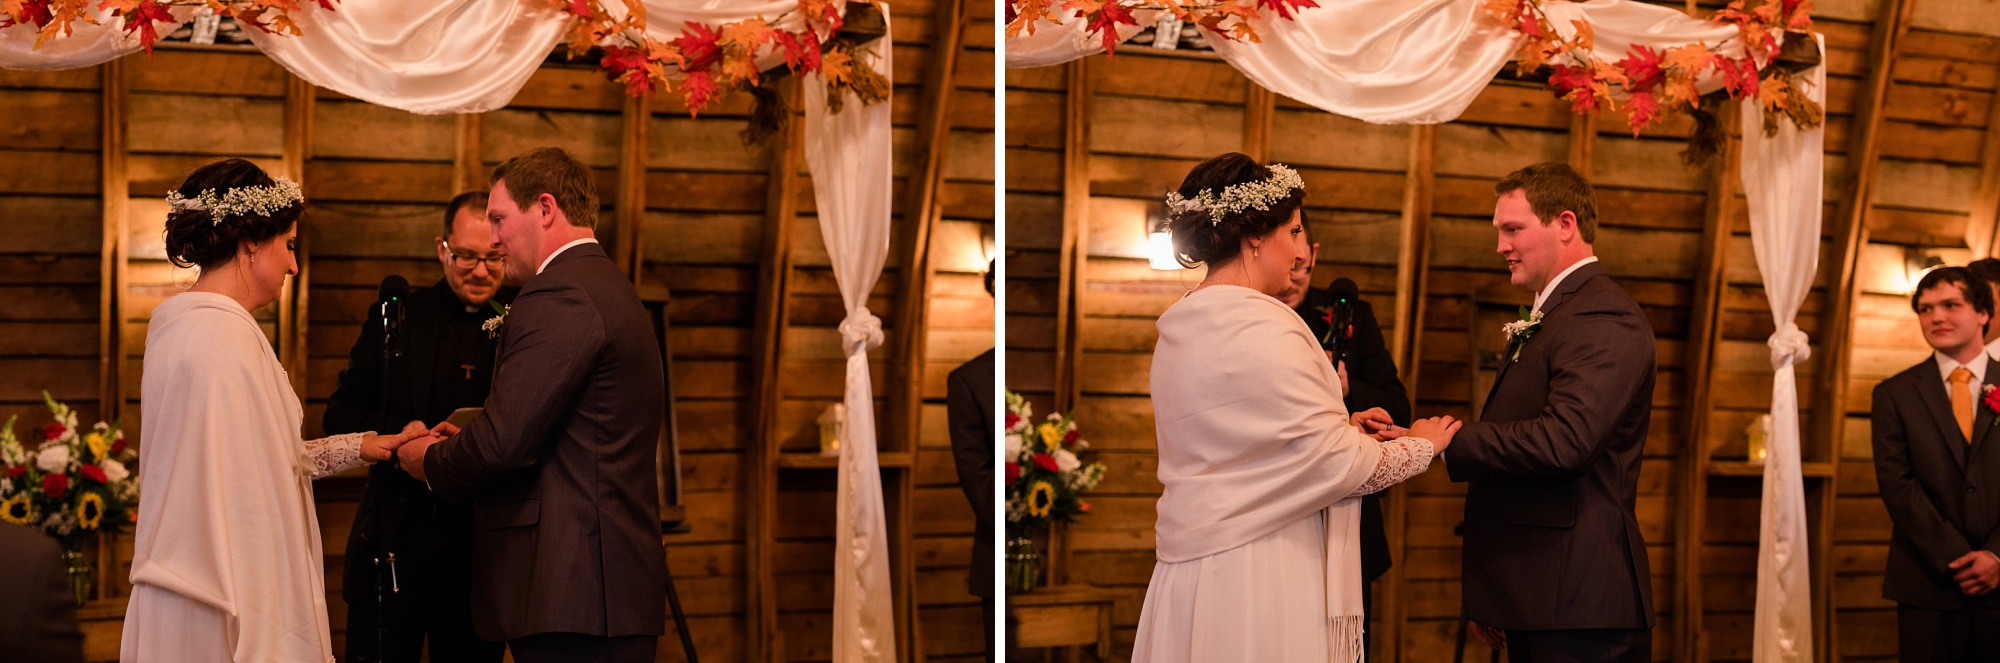 Amber Langerud_Rustic Oaks, MN winter barn wedding_0549.jpg